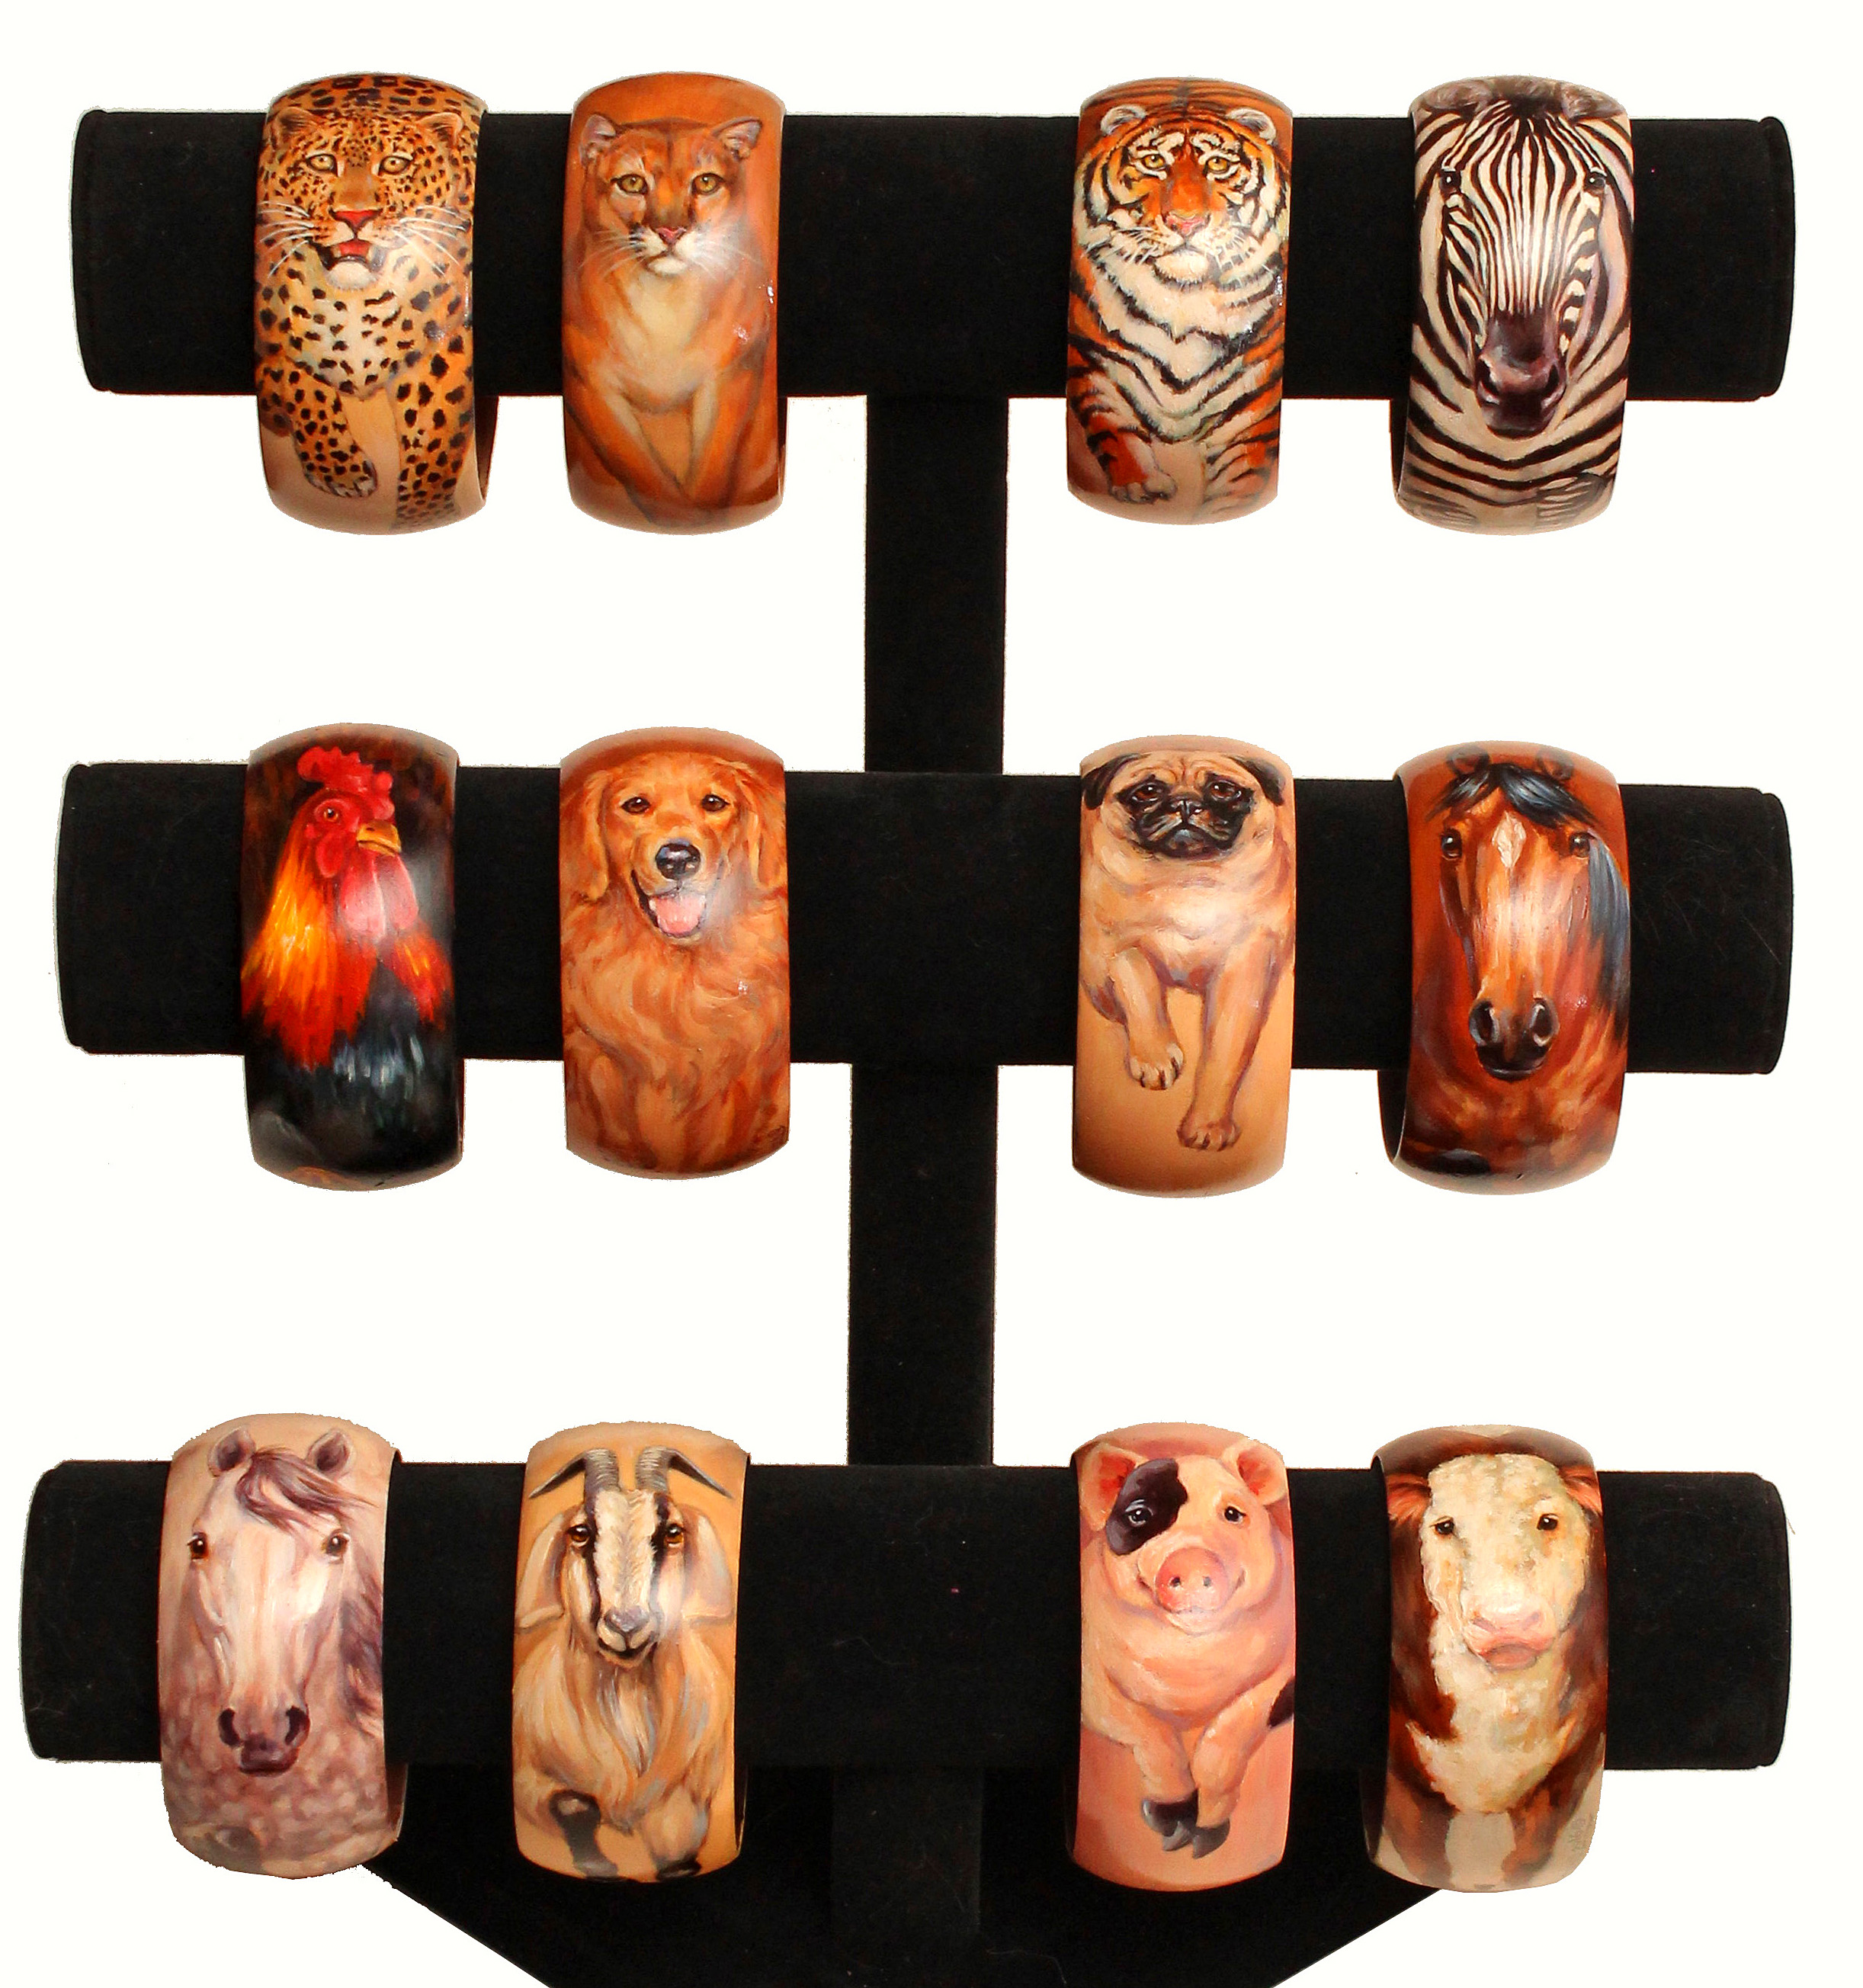 Hand-painted Wood Bracelets- Affordable Original Artwork worn on your wrist!